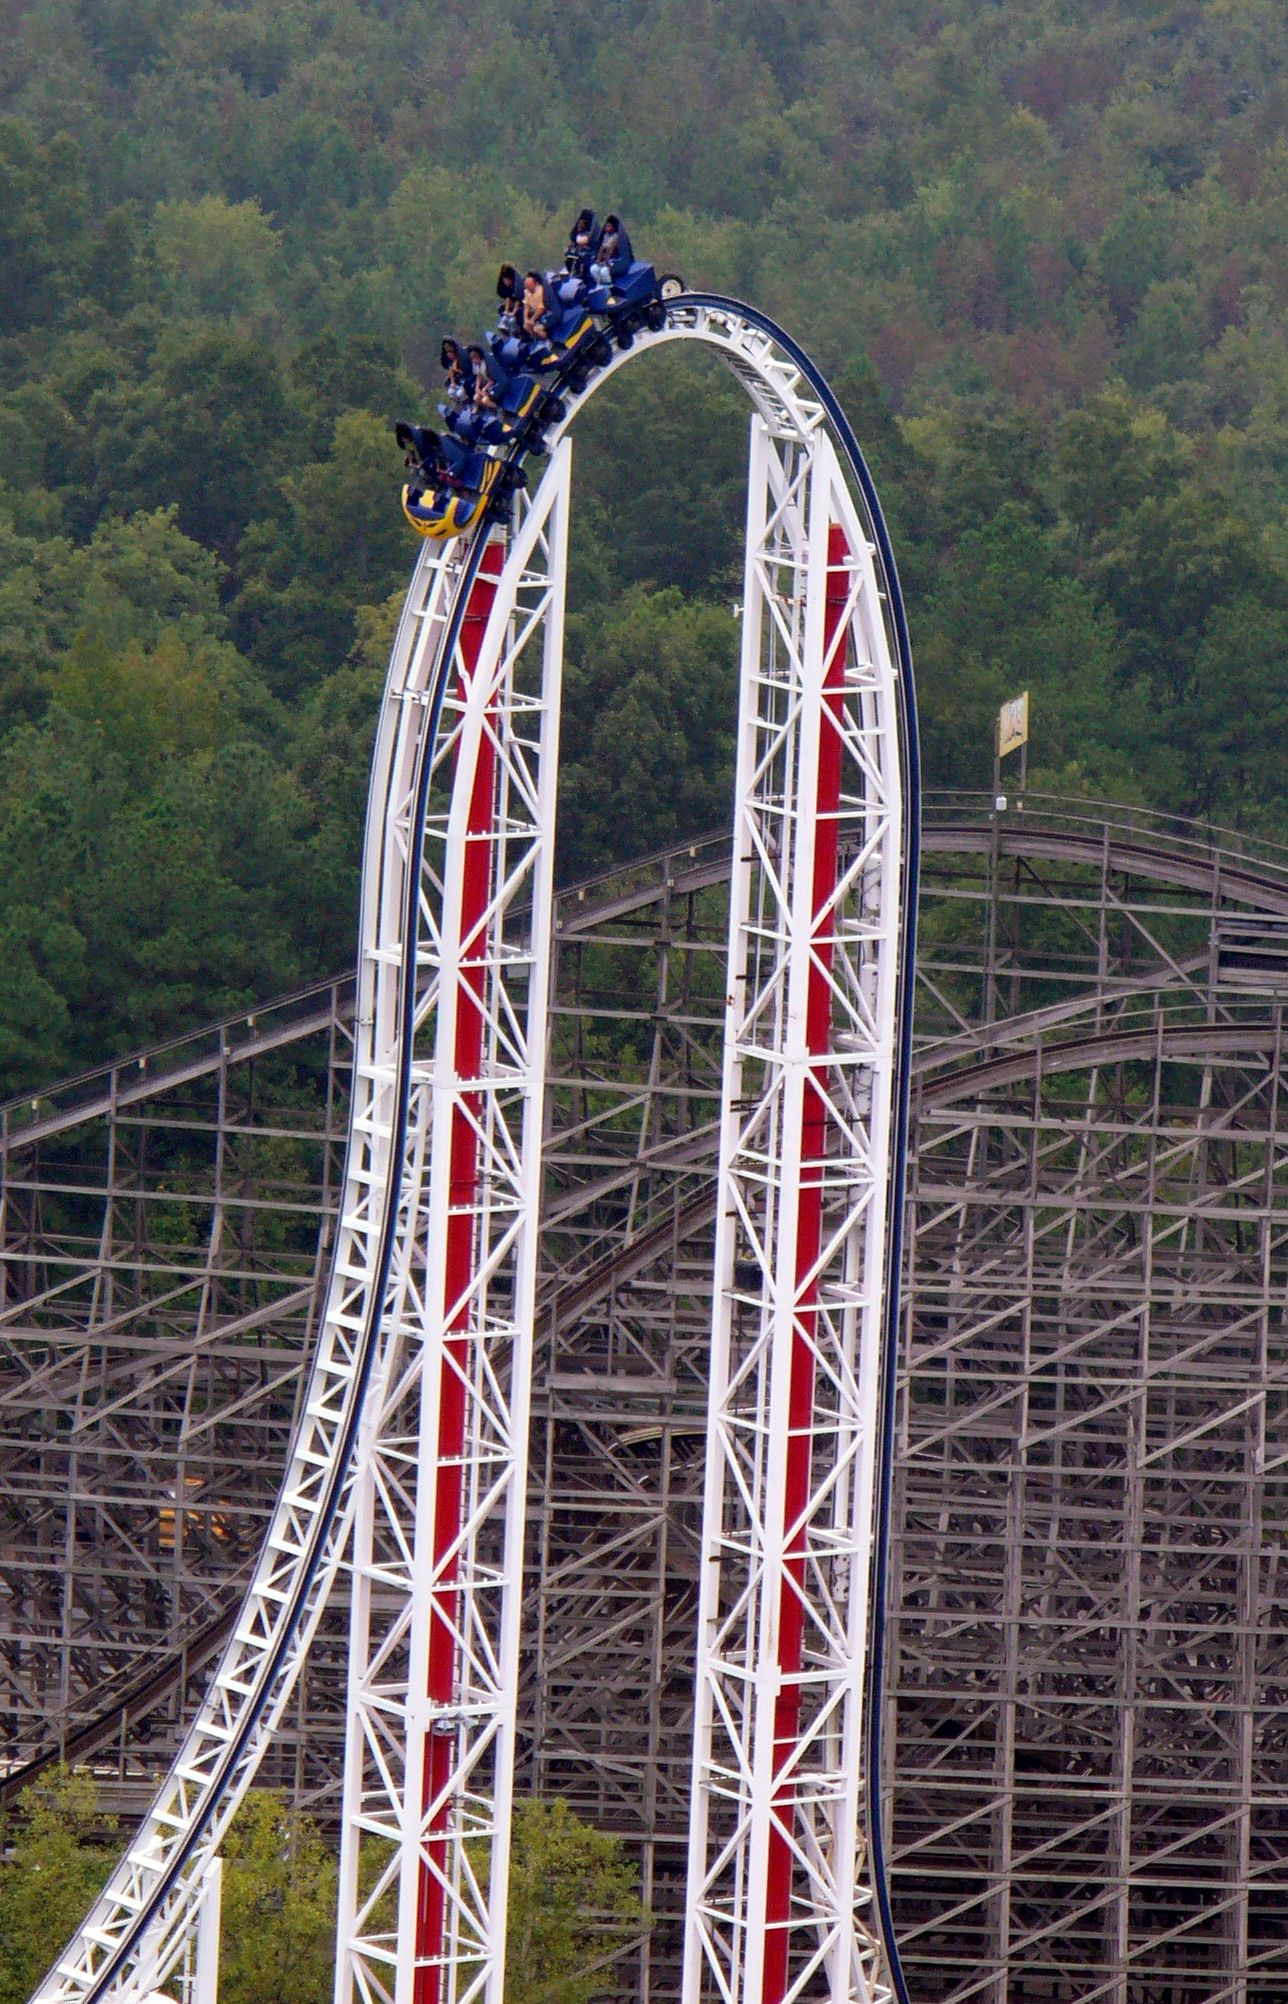 HyperSonic XLC, Kings Dominion, Virginia. >> Whoa, that is crazy! I love a good coaster!